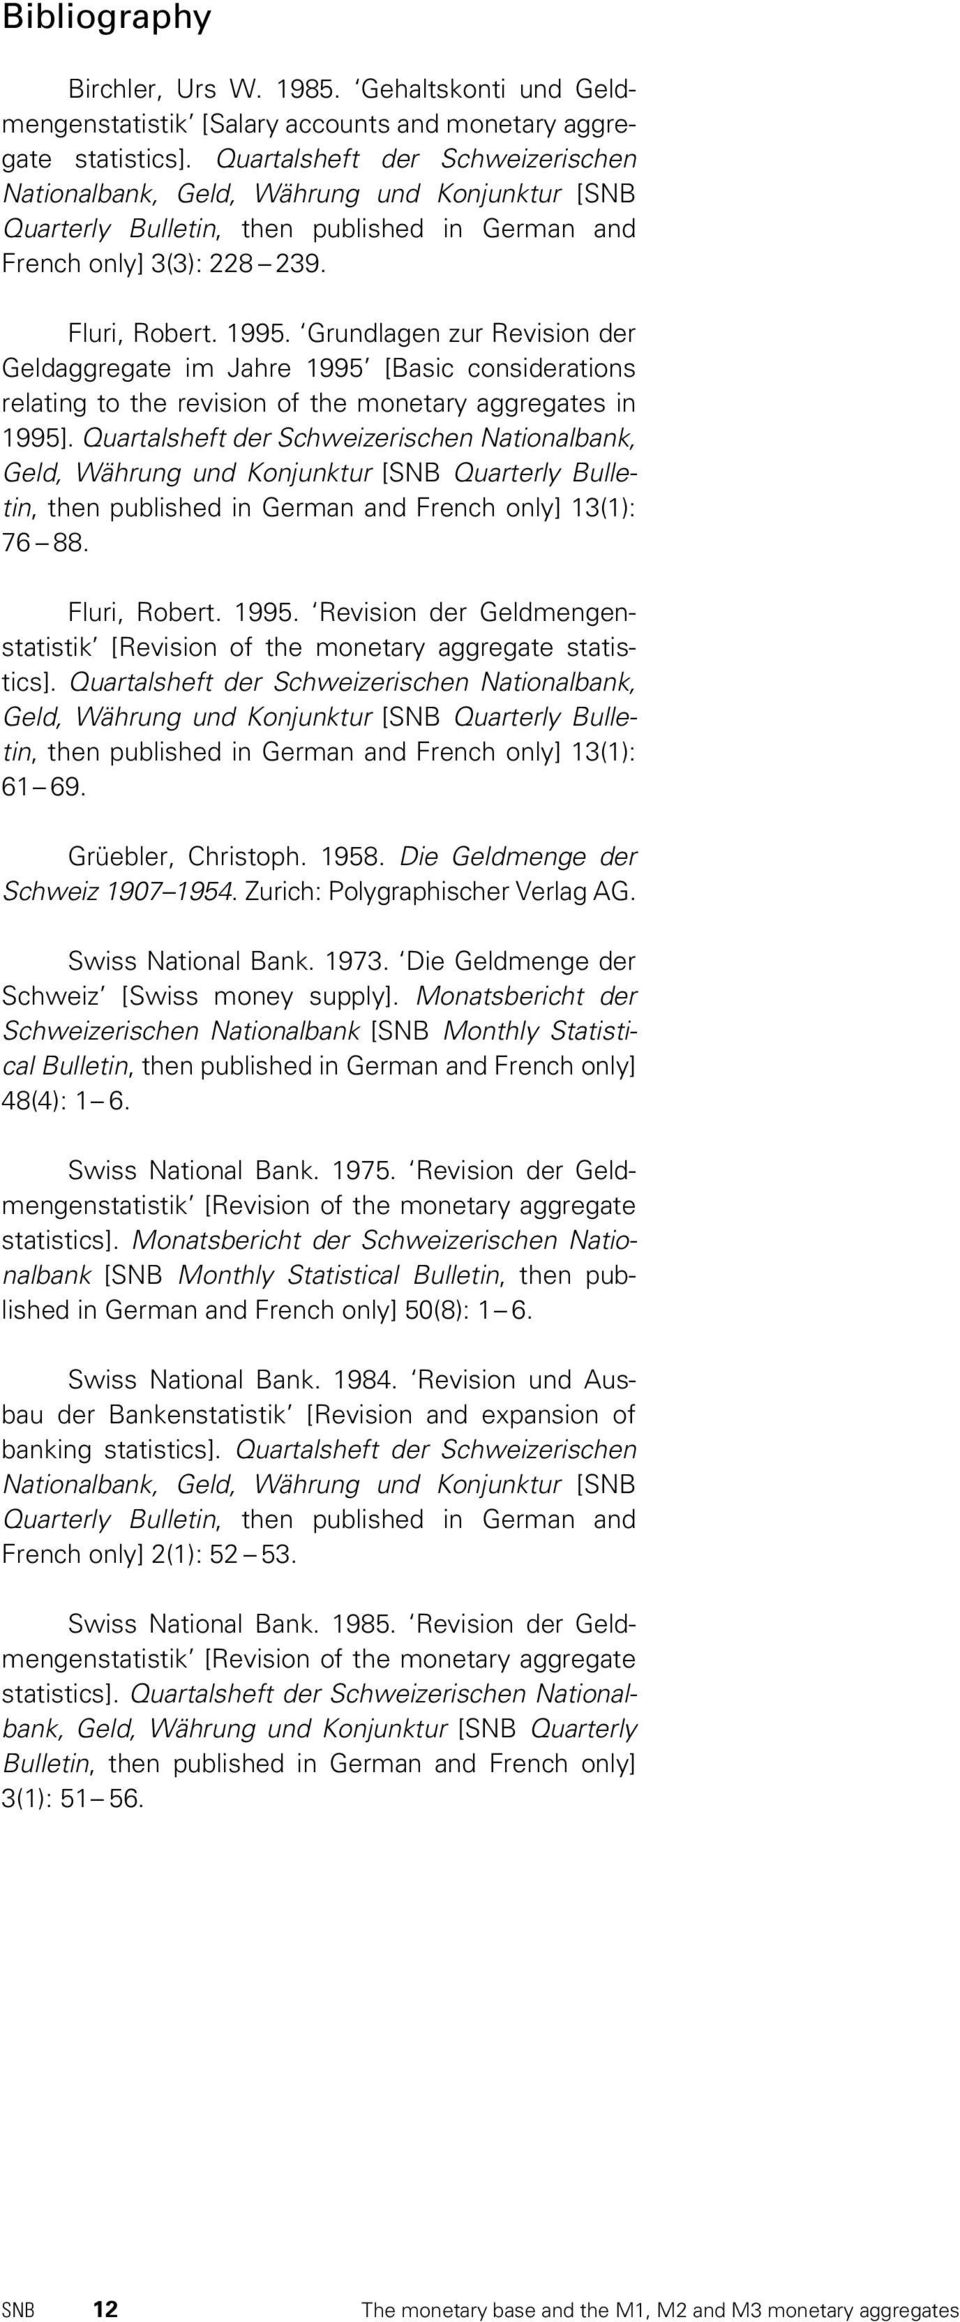 Grundlagen zur Revision der Geldaggregate im Jahre 1995 [Basic considerations relating to the revision of the monetary aggregates in 1995].